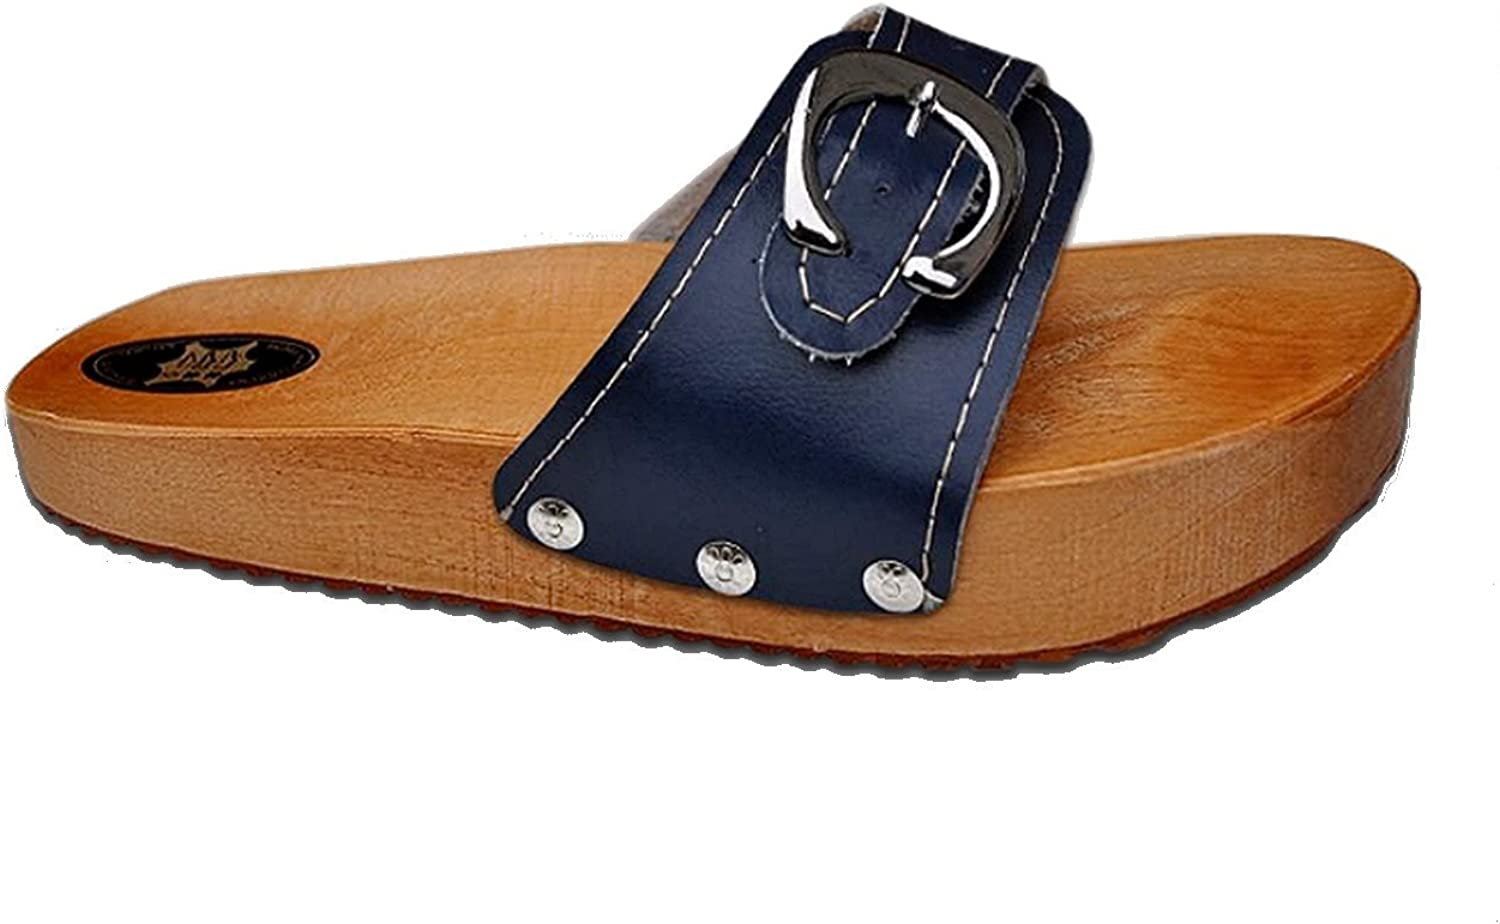 Marited' Navy bluee Anti Cellulite Medical Slimming Sandals Clogs shoes Natural Wood and Leather